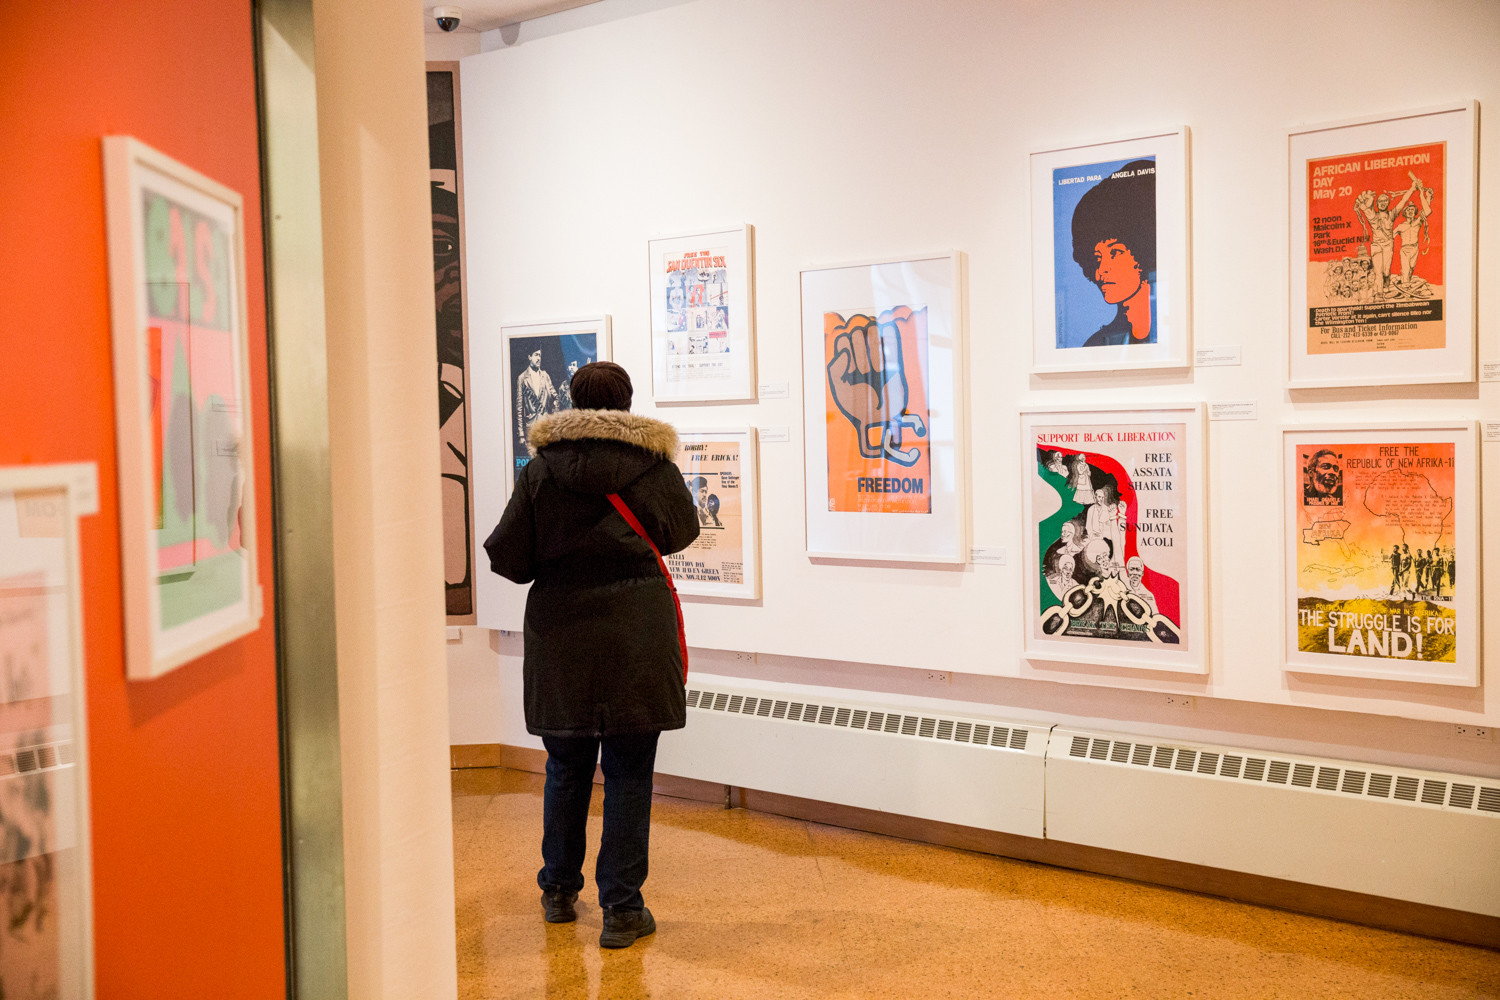 The posters of the black power movement were 'the social media and digital design of the 1960s and 1970s,' says Sylviane Diouf, the exhibition's co-curator. It was a way to get the message out to the community and inform them of events like art and culture gatherings and the support the freeing of political prisoners.